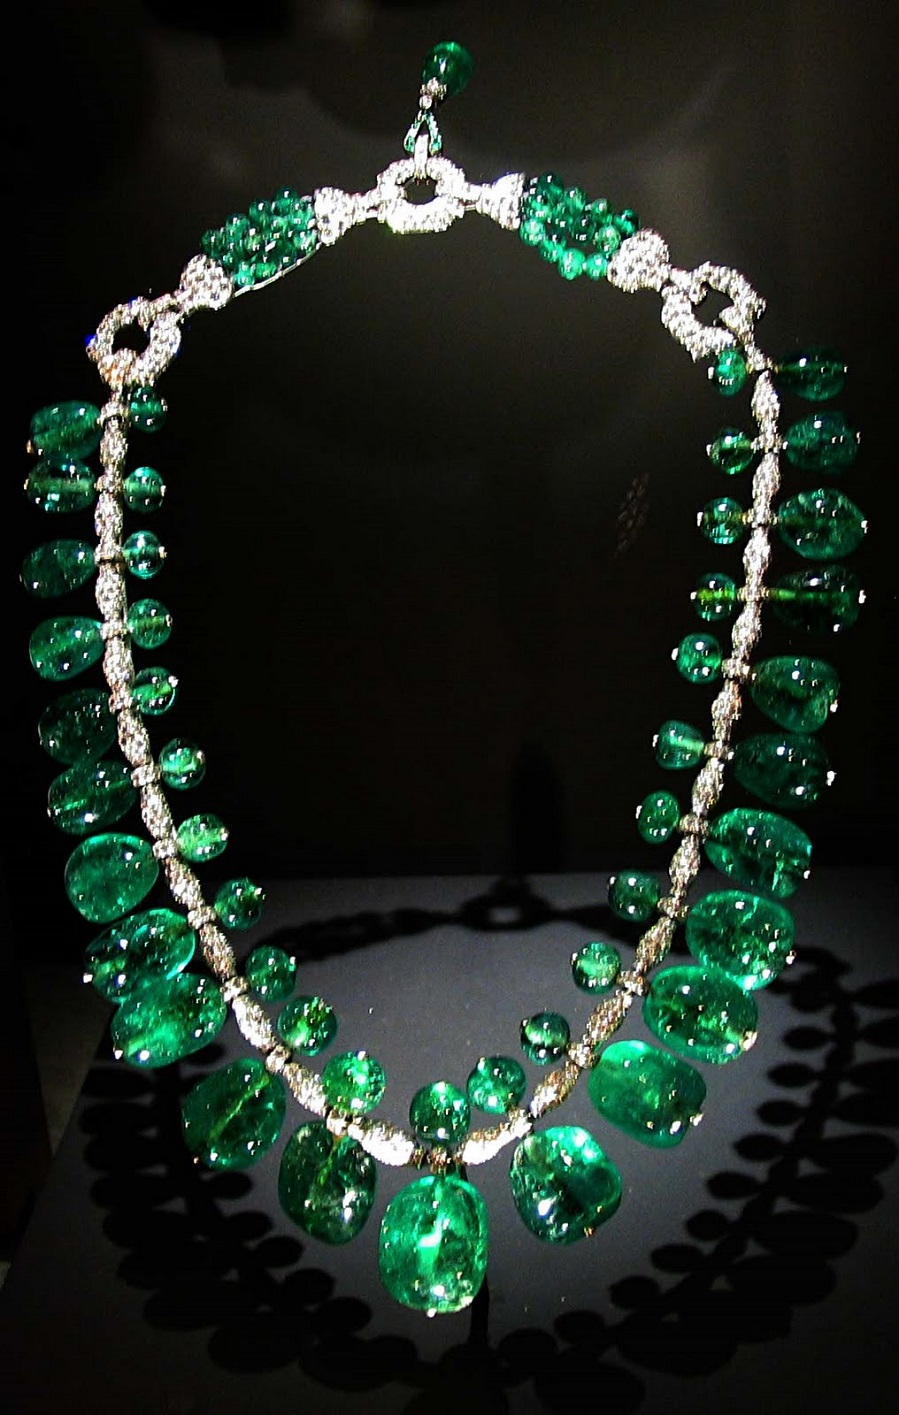 indian-emerald-necklace-from-columbia-made-by-cartier-1928-on-display-smithsonian-museum-of-natural-history-august-2010.jpg